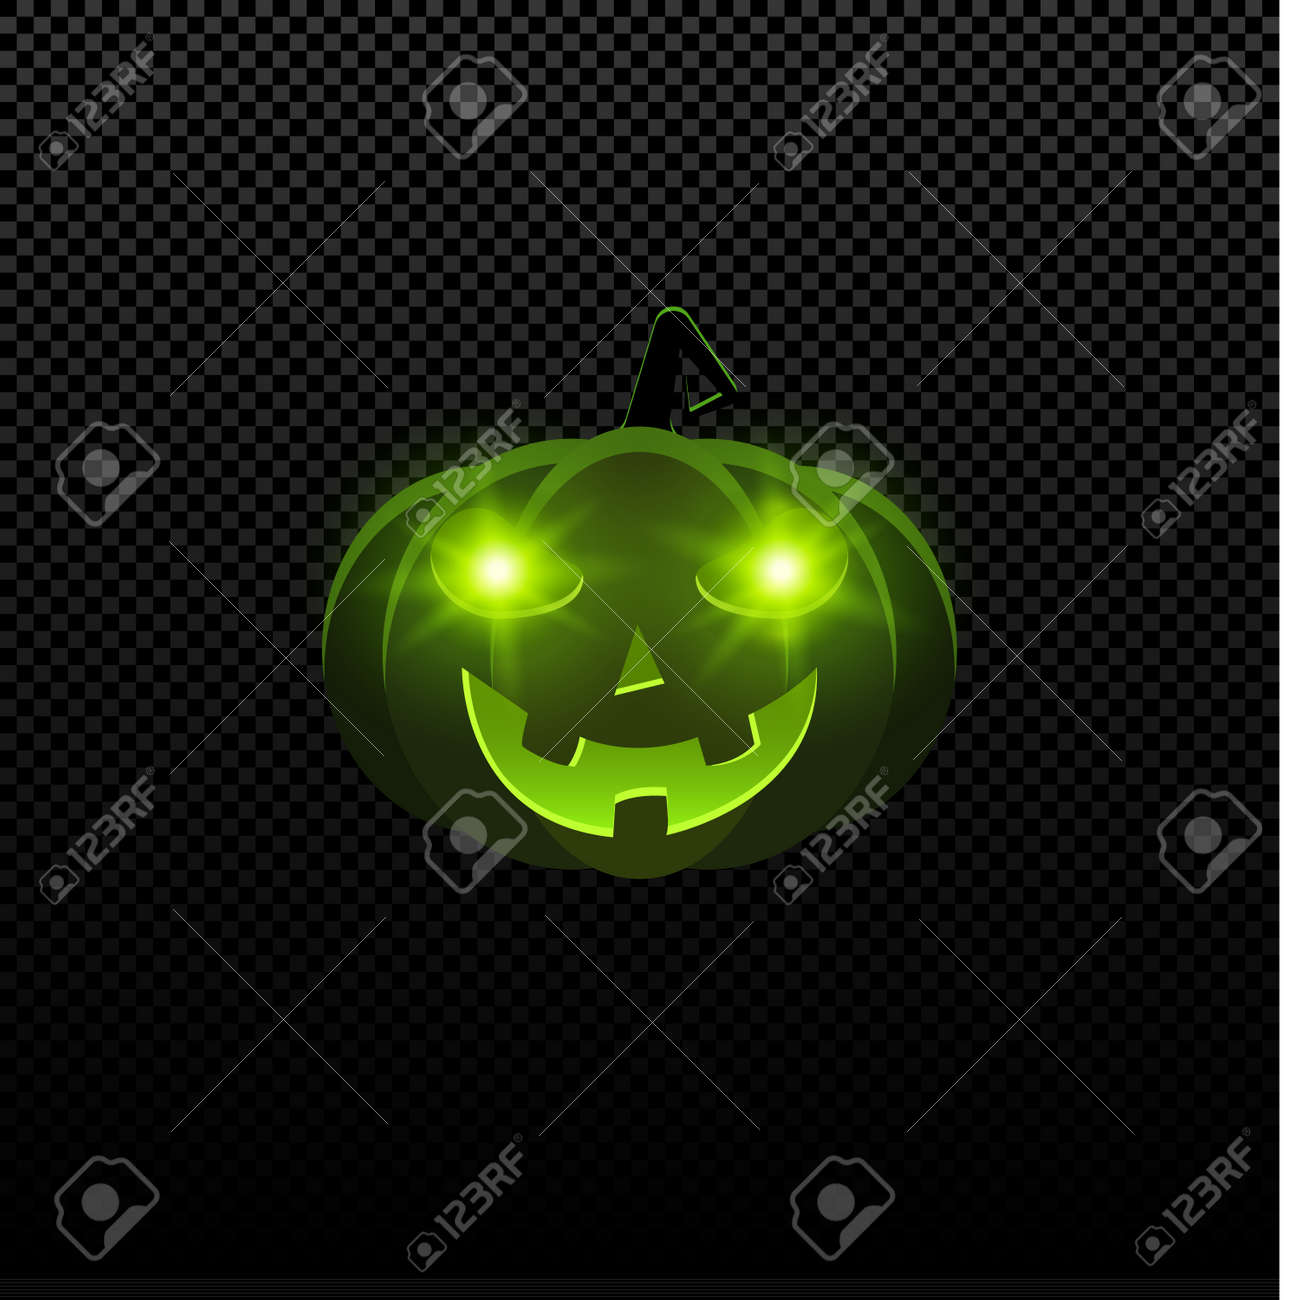 Cartoon Evil Halloween Pumpkin Of Green Color With Glowing Eyes ...